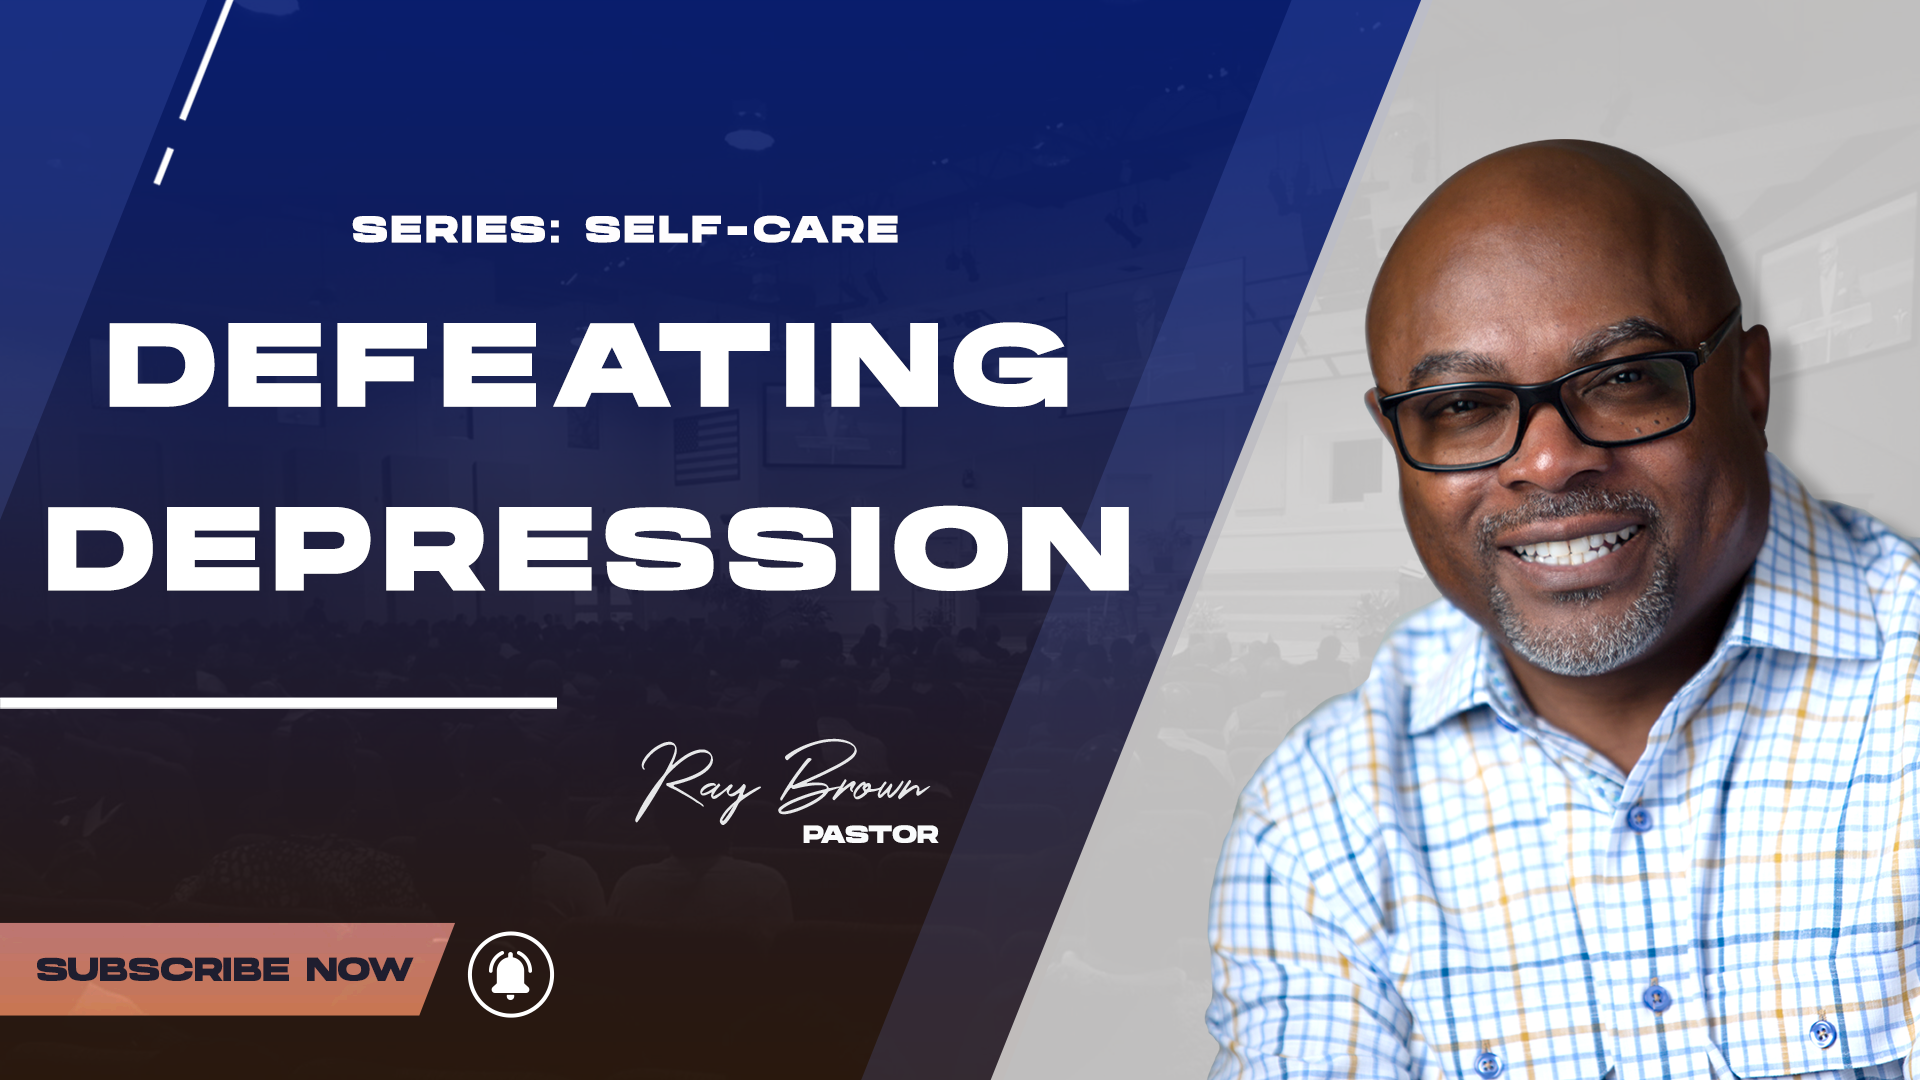 082221_selfcare_defeating depression